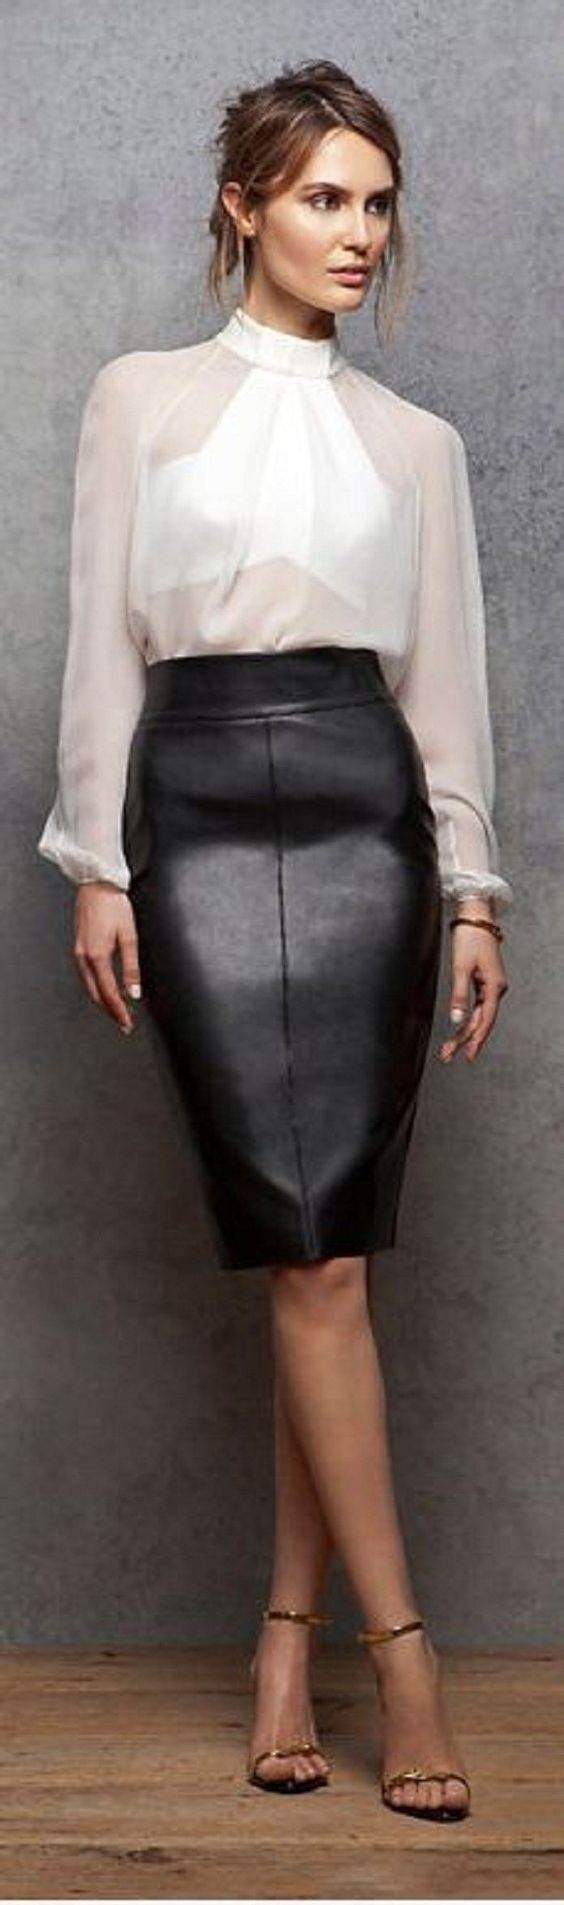 What top should you wear with a pencil skirt?